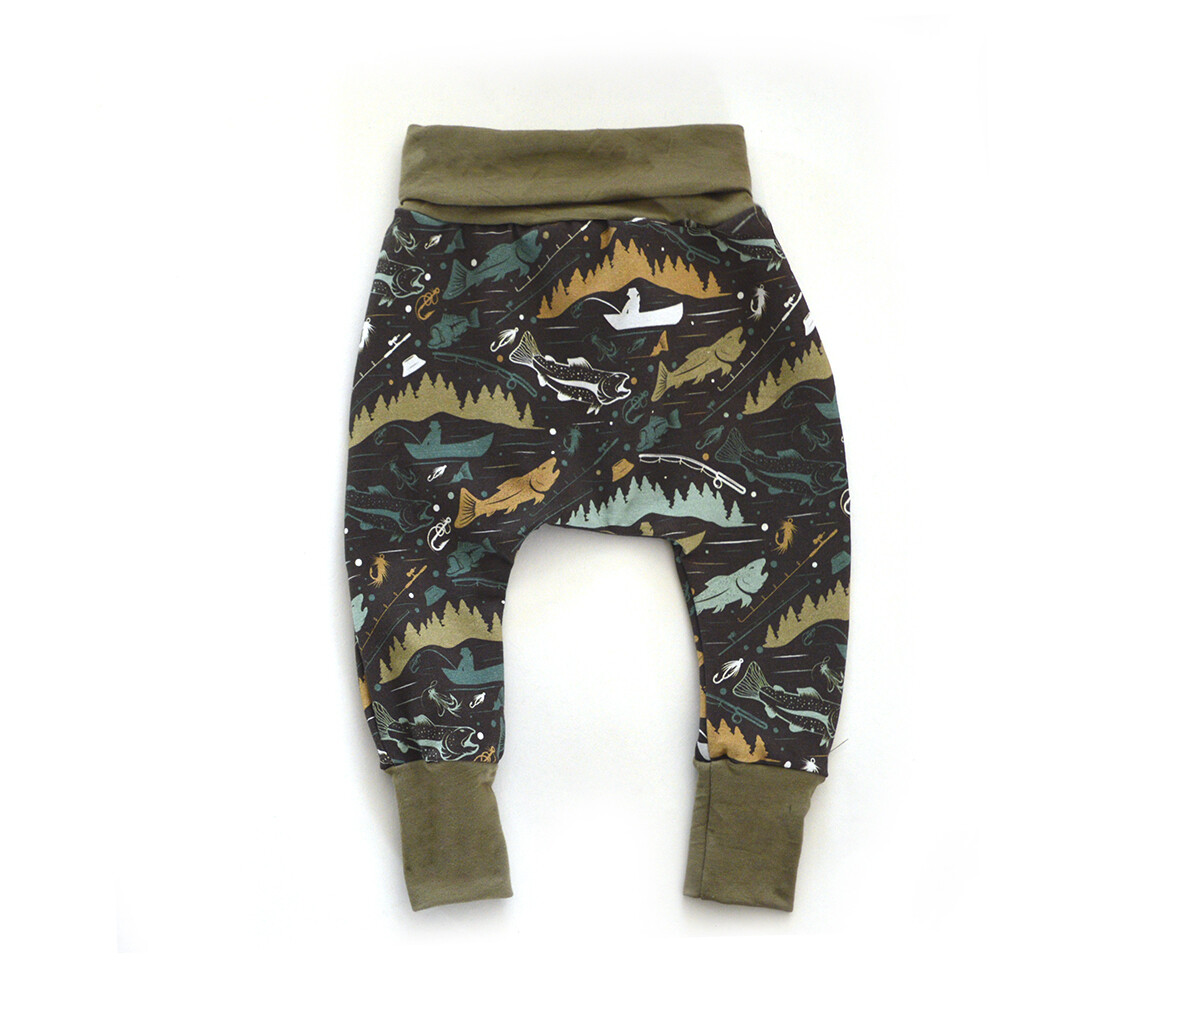 Little Sprout™ One-Size Grow with Me Harem Pants - Lightweight Summer Bottoms - Fishin'